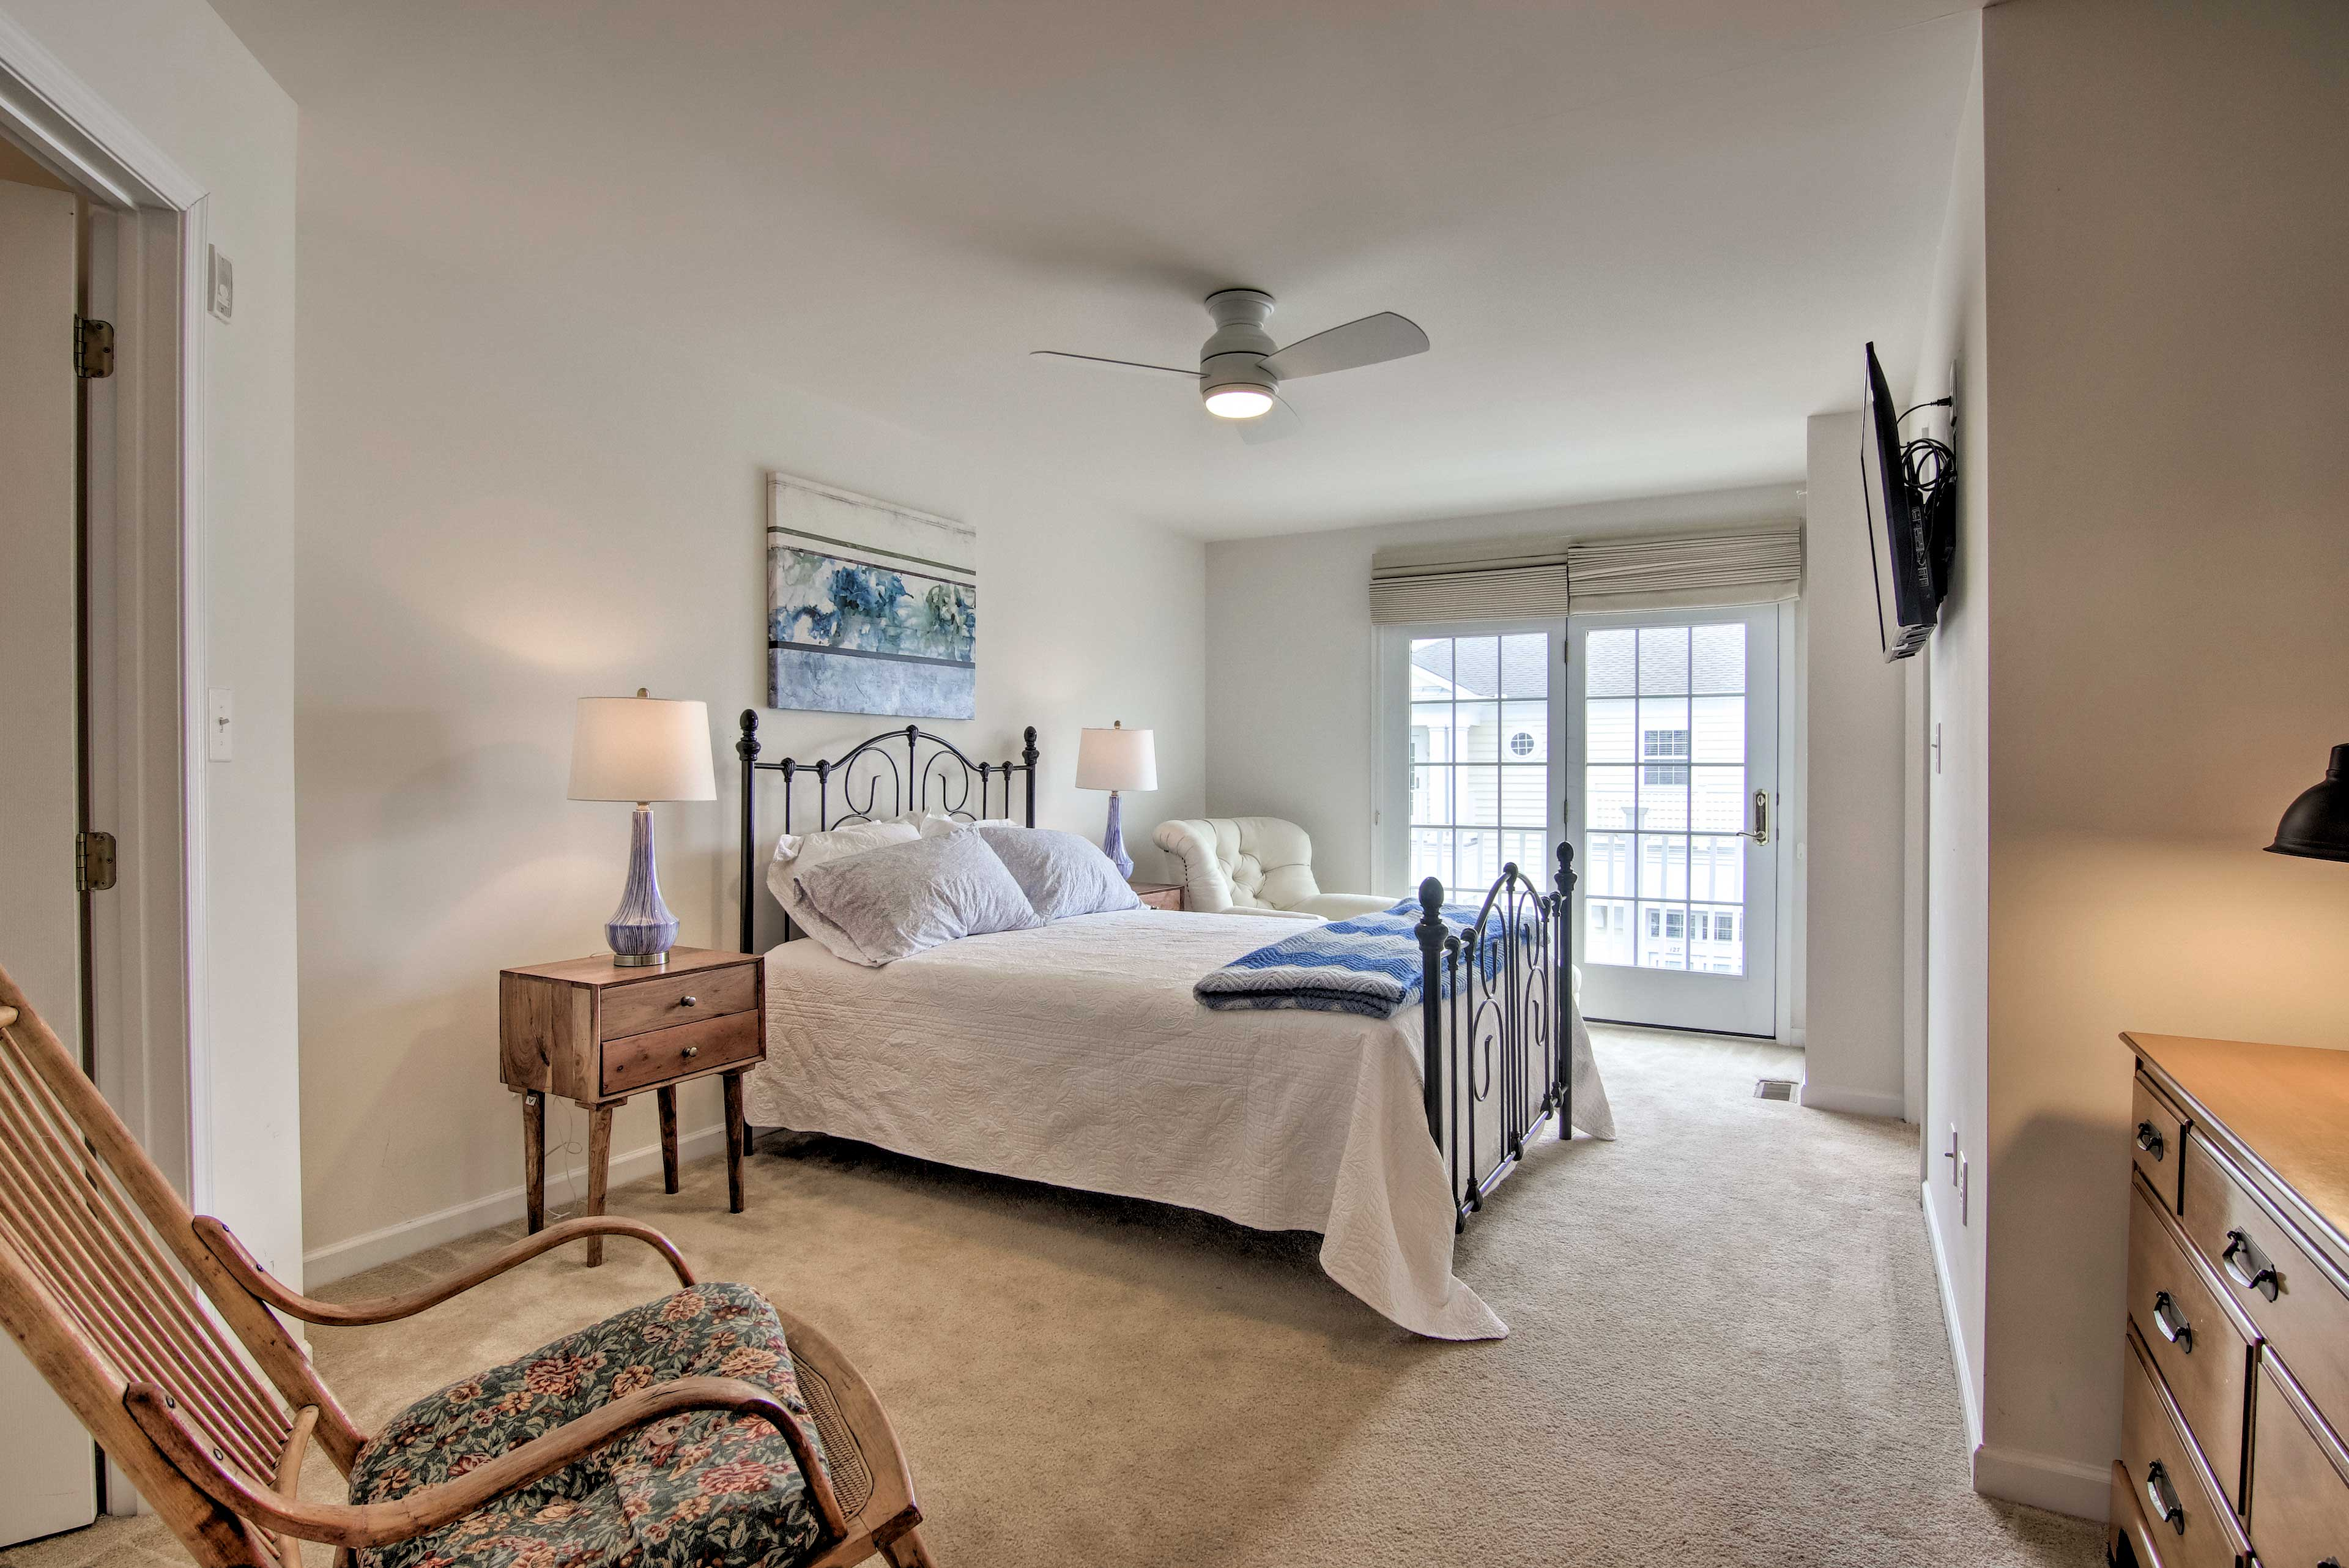 Claim this spacious master bedroom as your own!